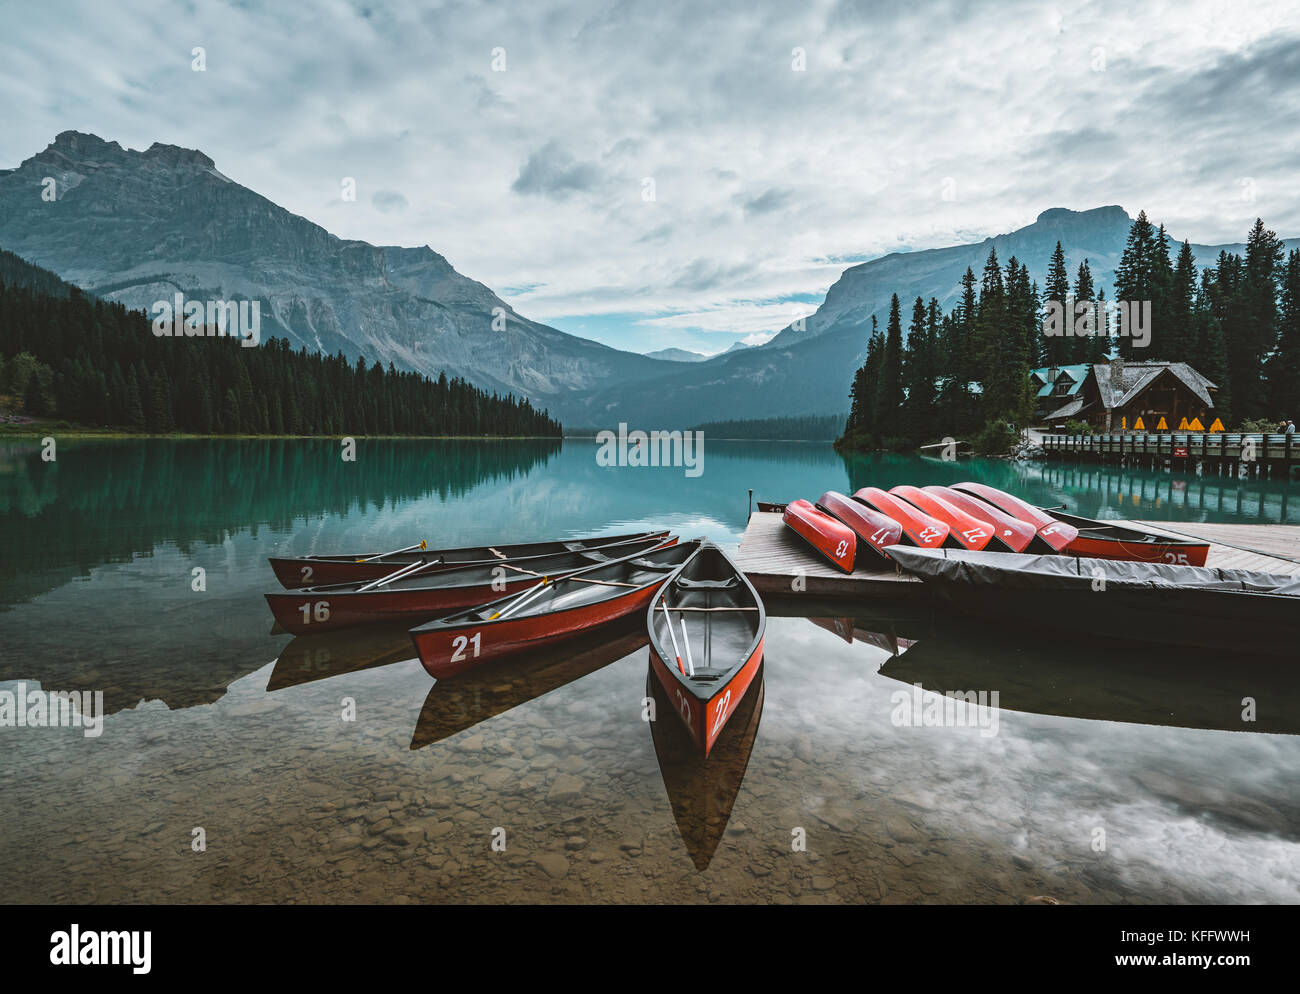 Canoës à Emerald Lake Yoho National Park, Canada Photo Stock